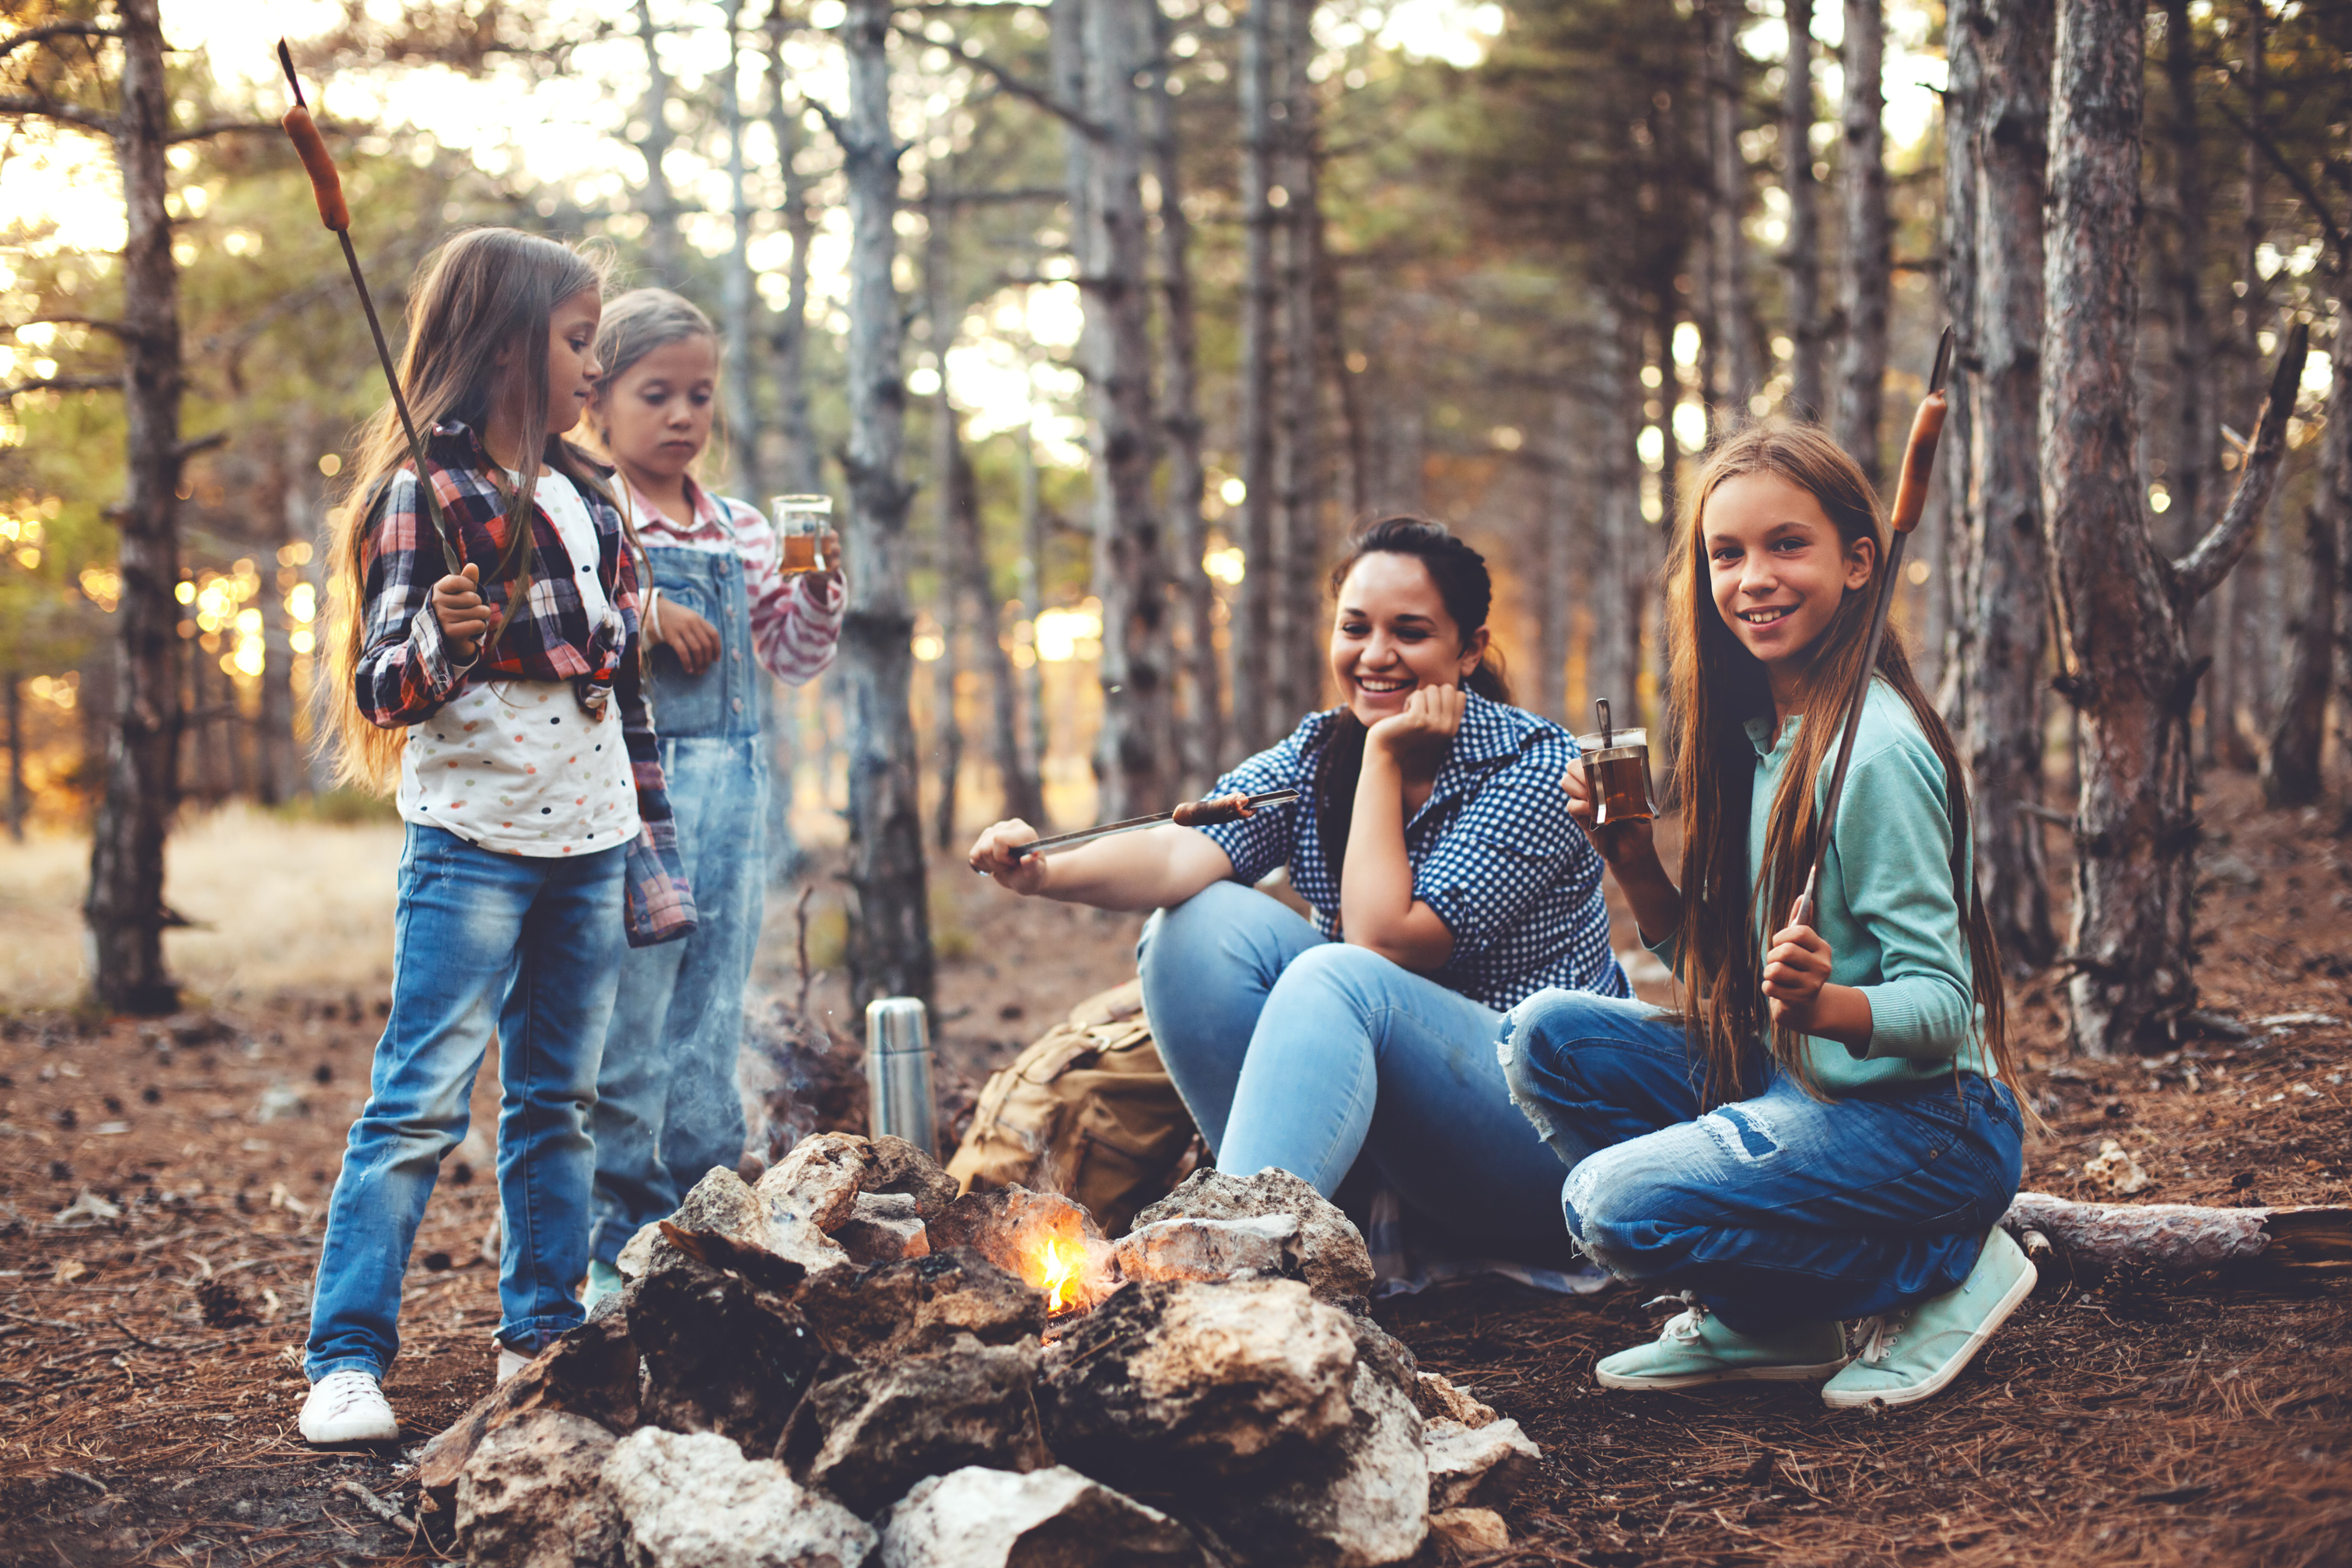 Cooking over campfire AdobeStock_116521196-1